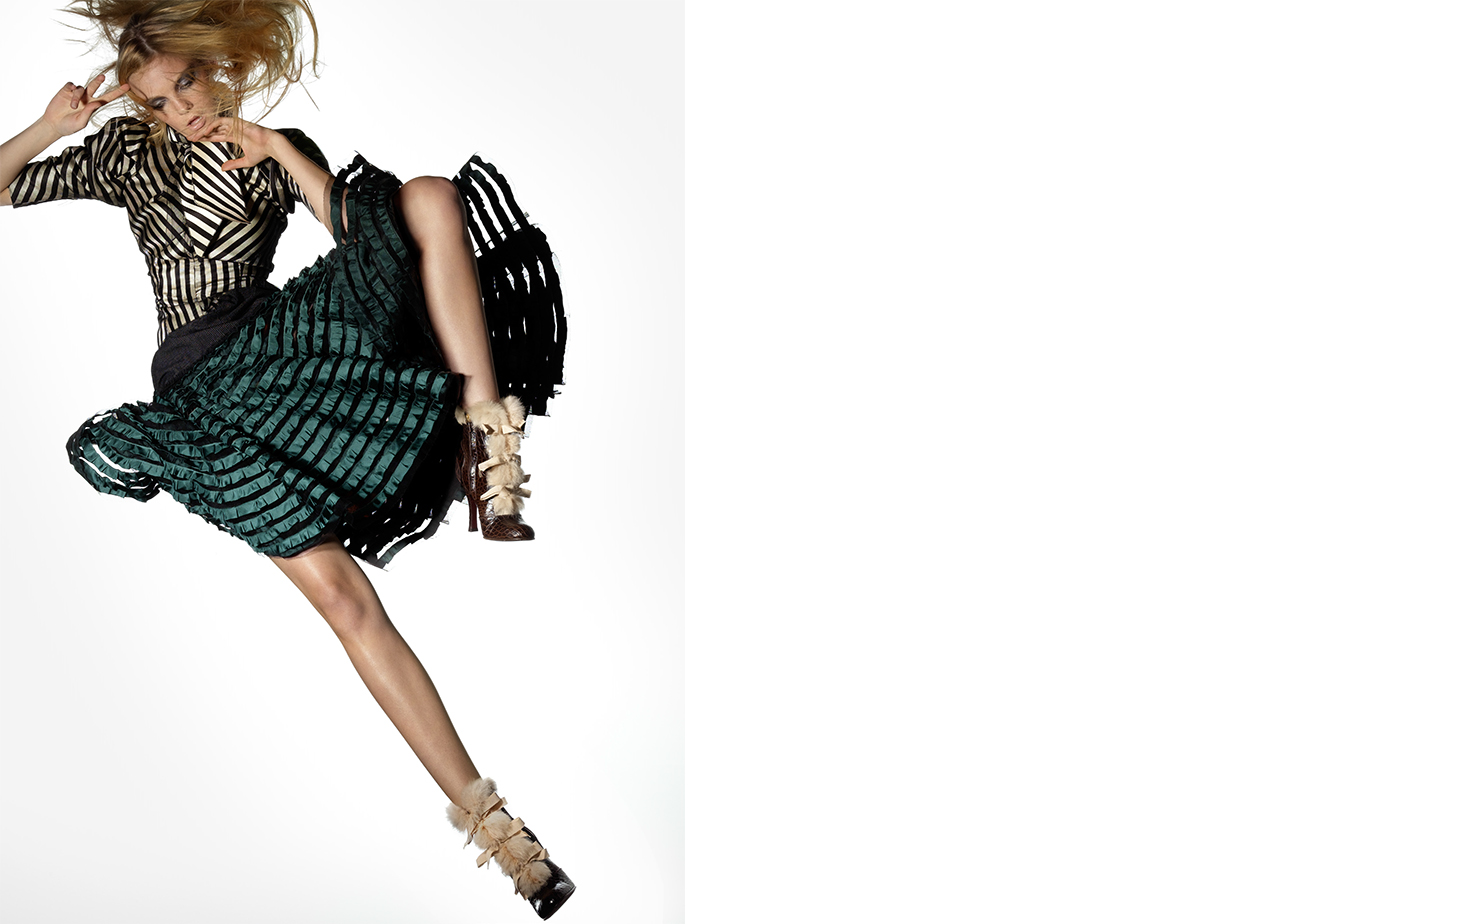 Vogue THE RIGHT STUFF   FASHION EDITOR Elissa Santisi MODEL Caroline Trentini